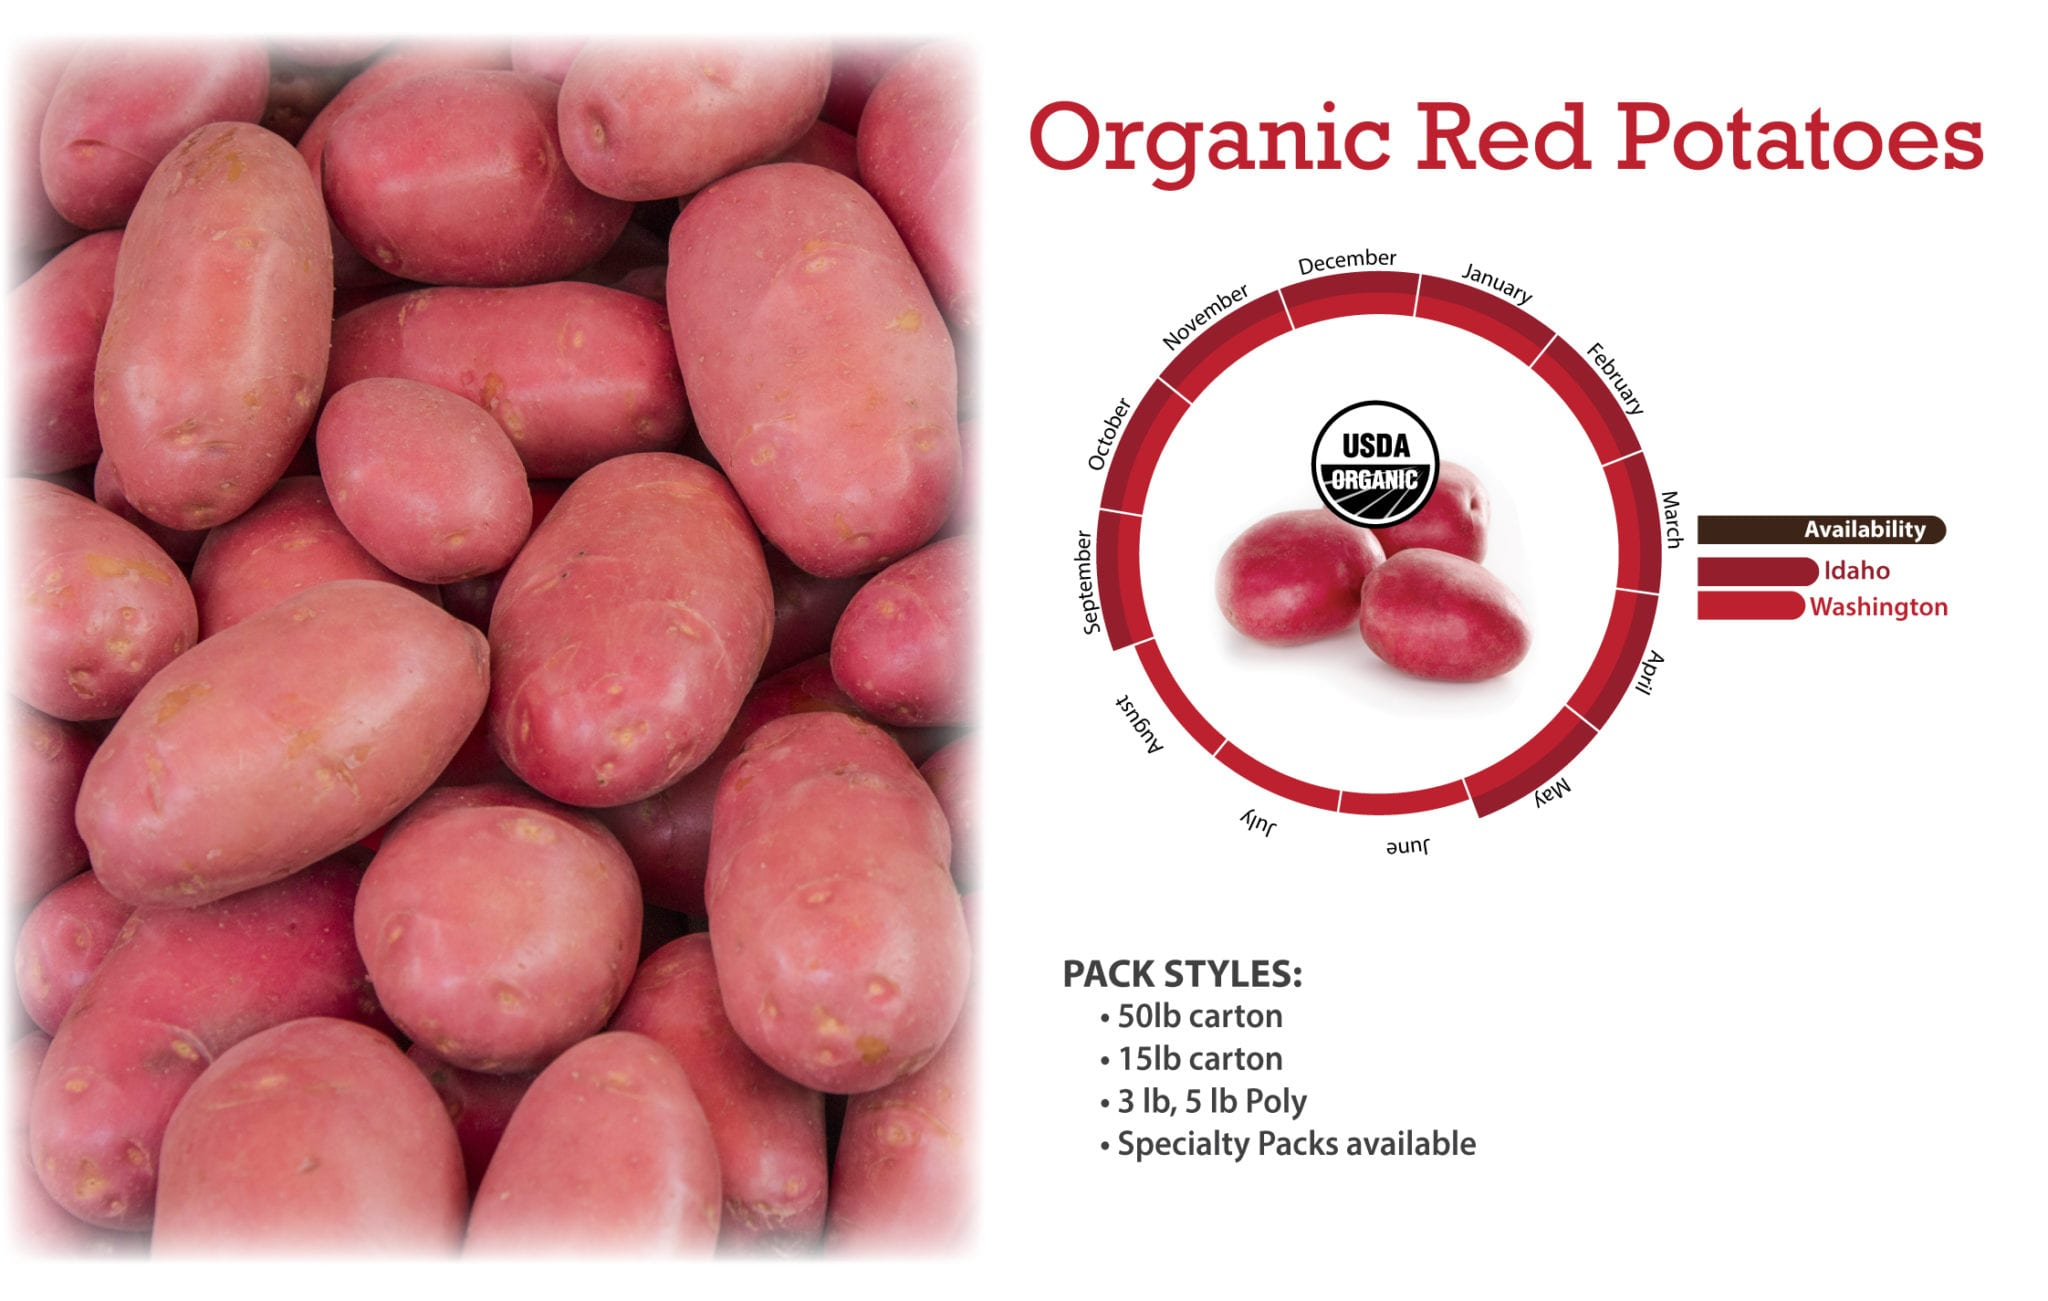 Organic Red Potatoes